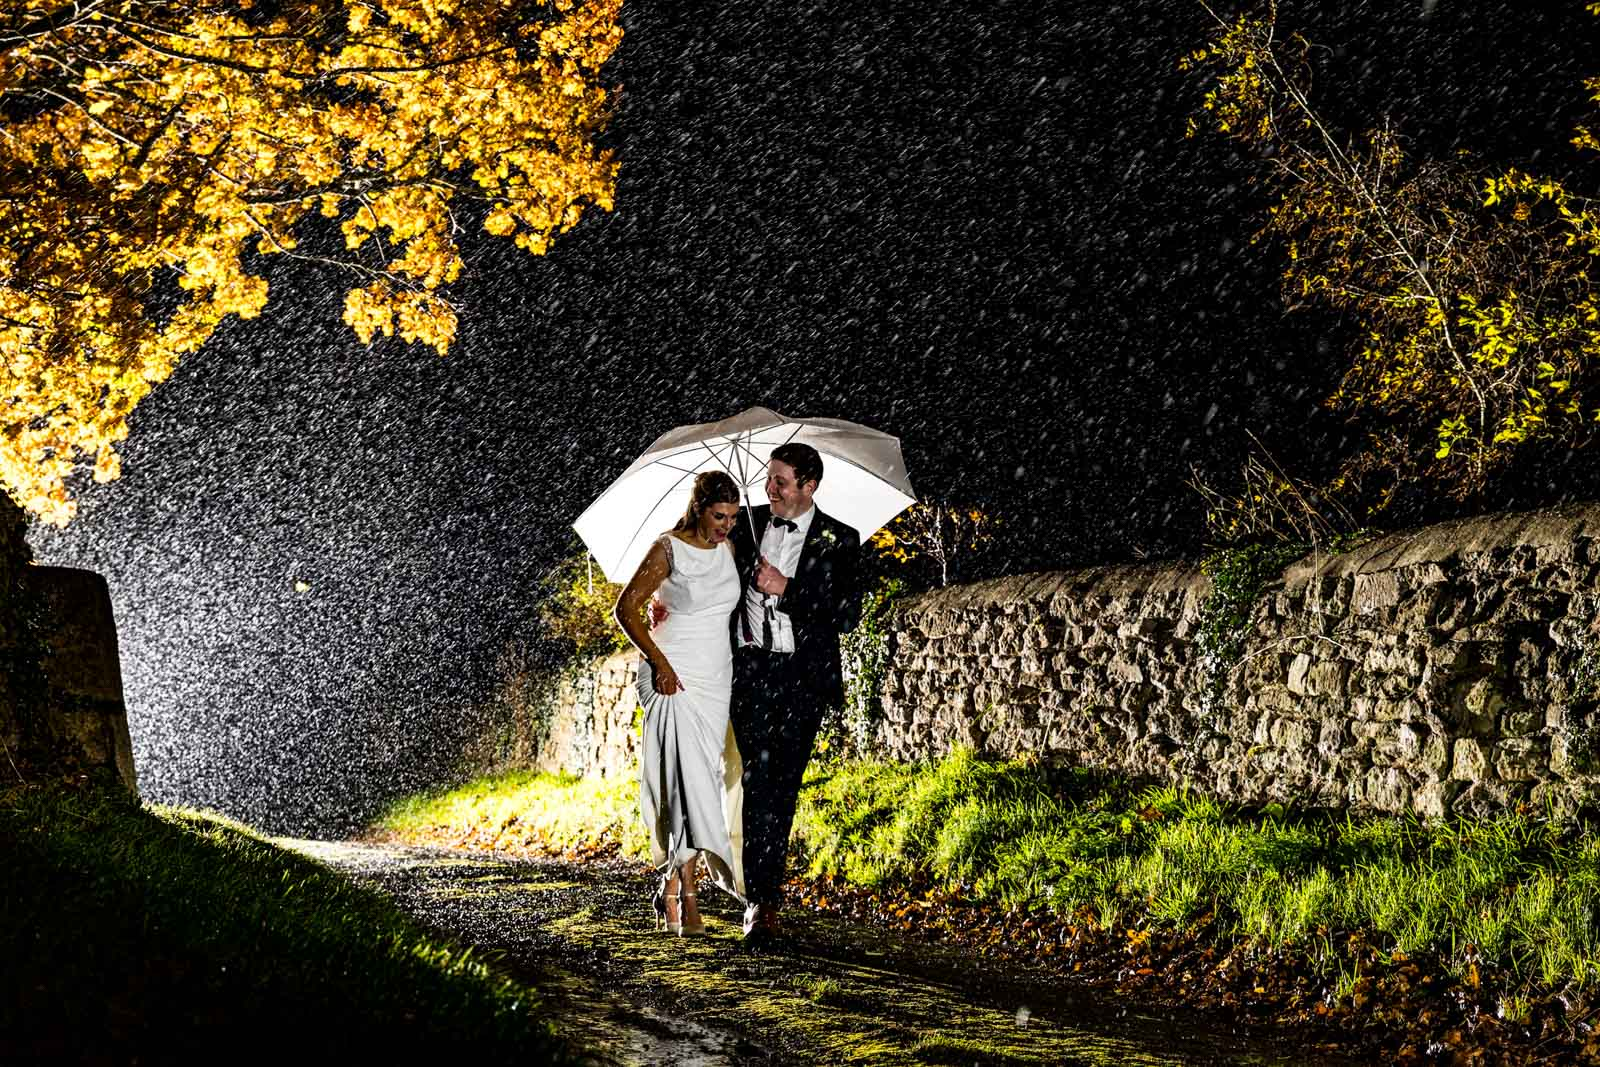 What happens if if rains on your wedding day photo of a bride and groom walking in the rain at Dodford Manor